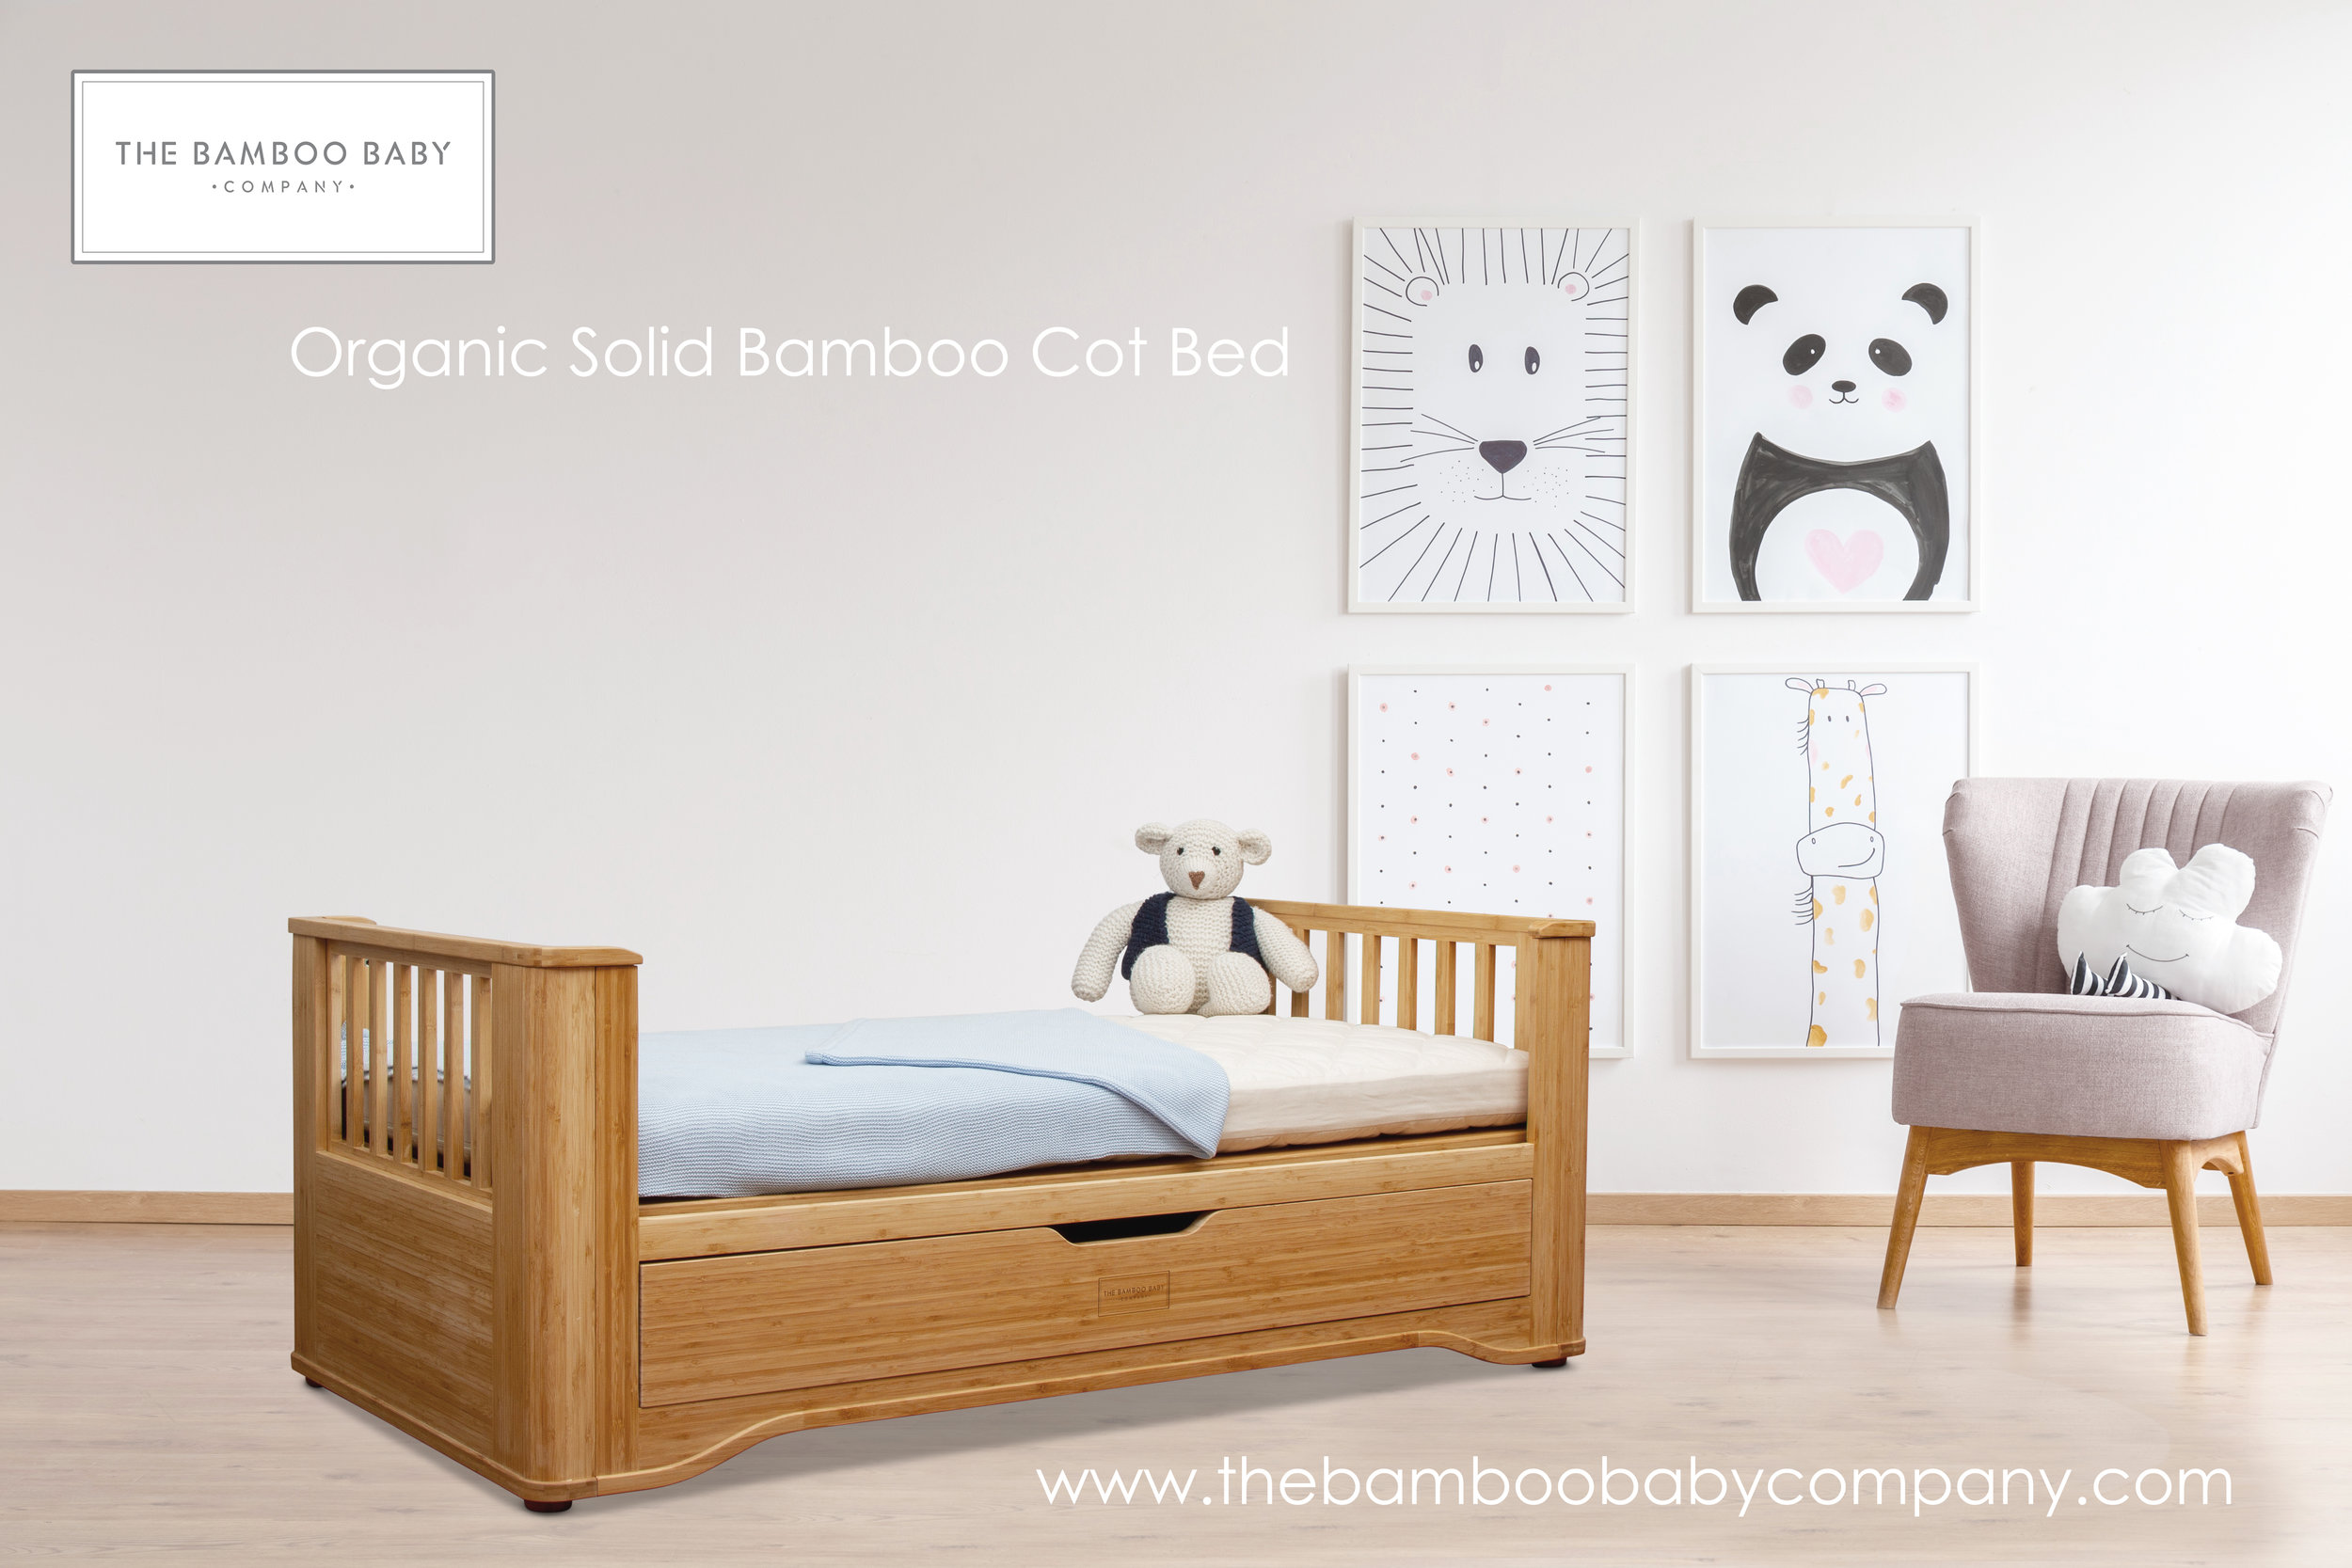 The Bamboo Baby Company